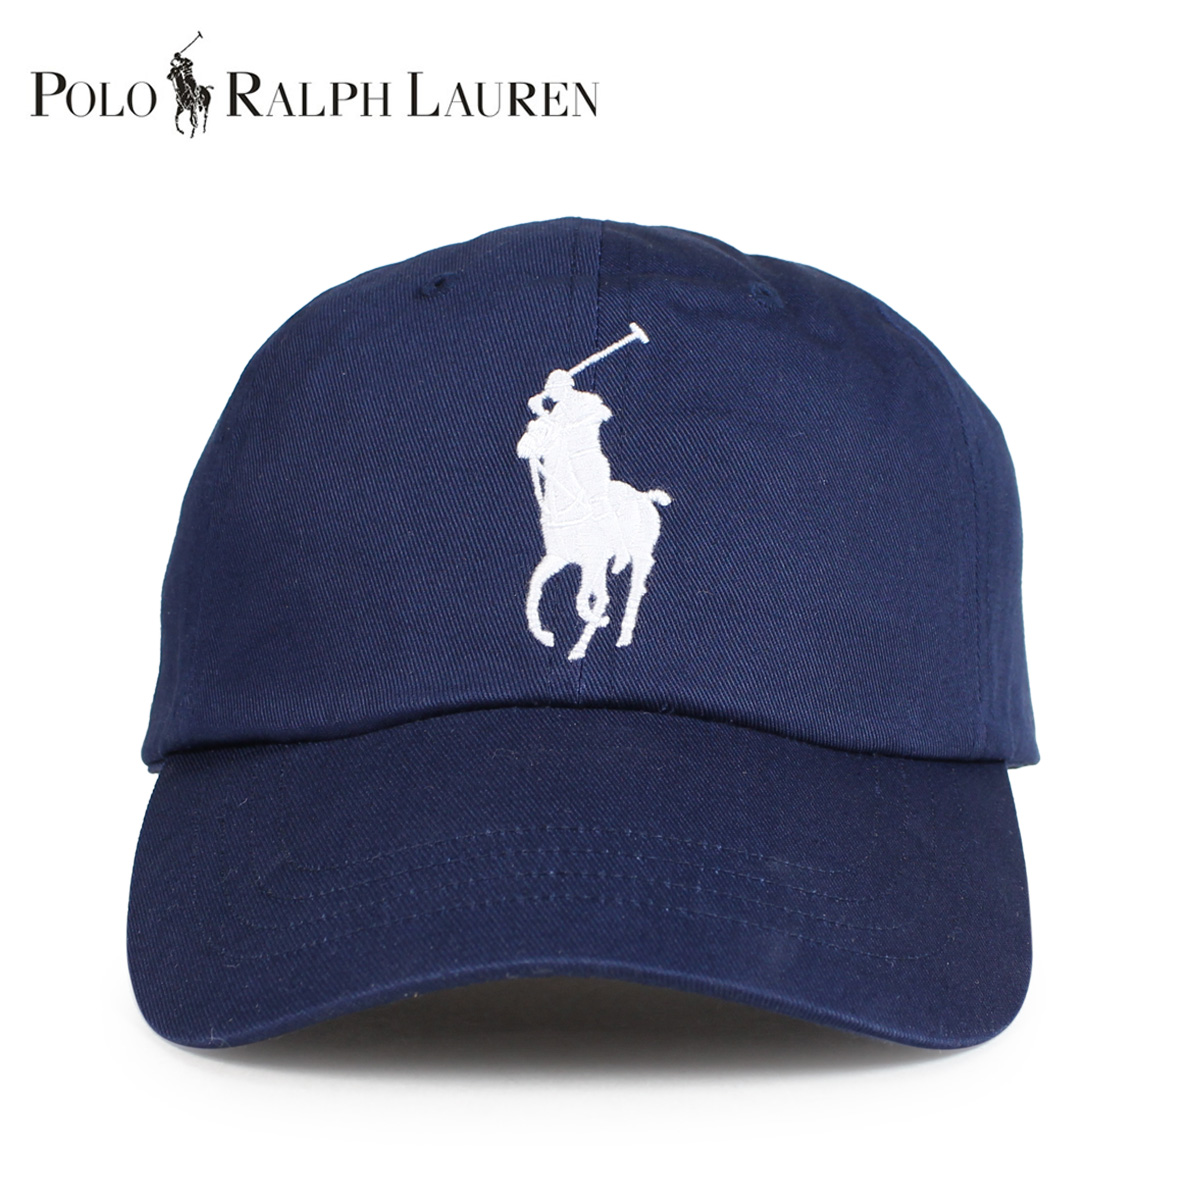 40b31b5bf805b POLO RALPH LAUREN polo Ralph Lauren cap hat men gap Dis cotton BIG PONY  CHINO BASEBALL CAP navy 710673584013  1 15 Shinnyu load